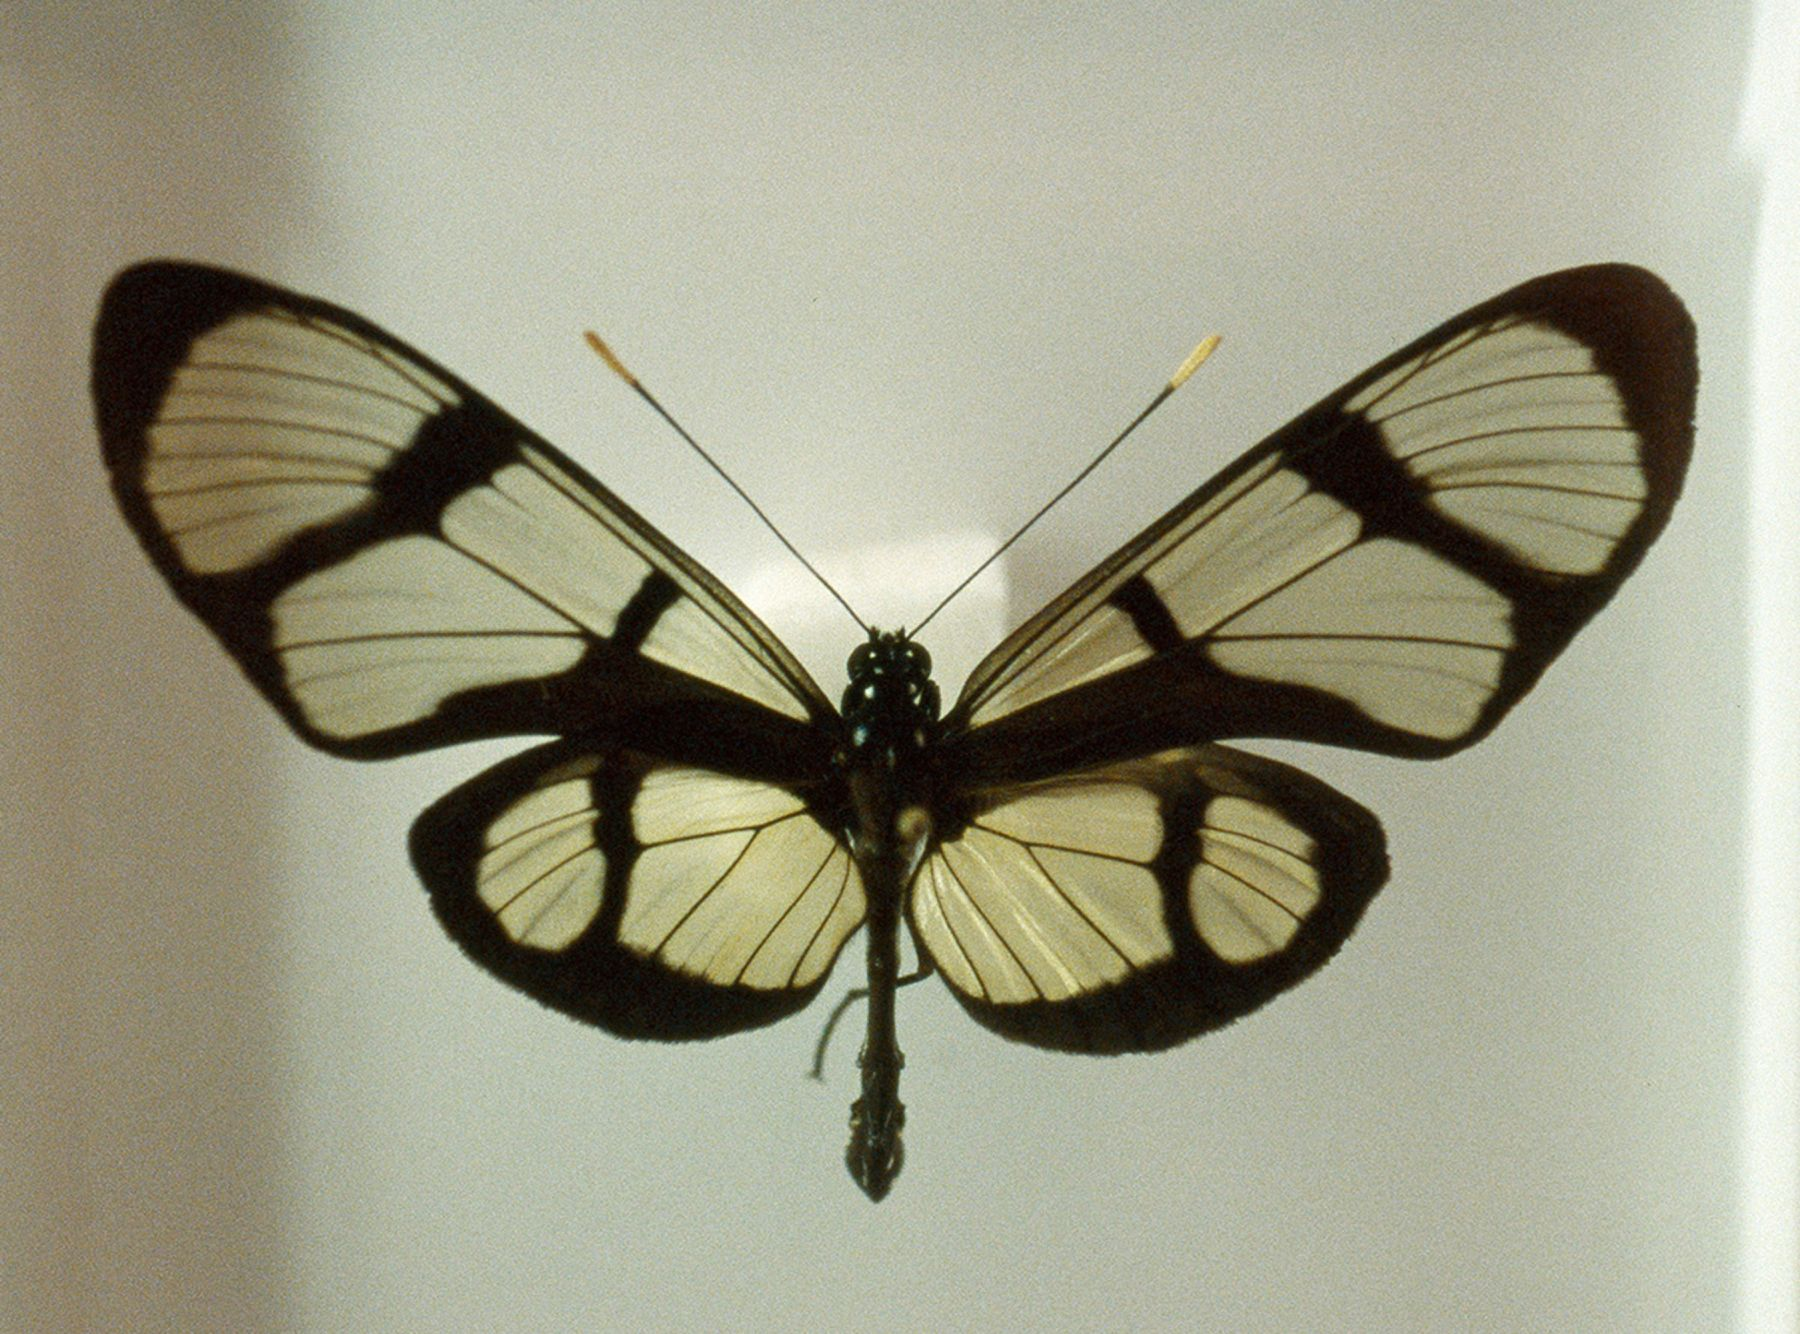 Susanne Wellm, Inner Landscapes, Butterfly, 2012, Sous Les Etoiles Gallery